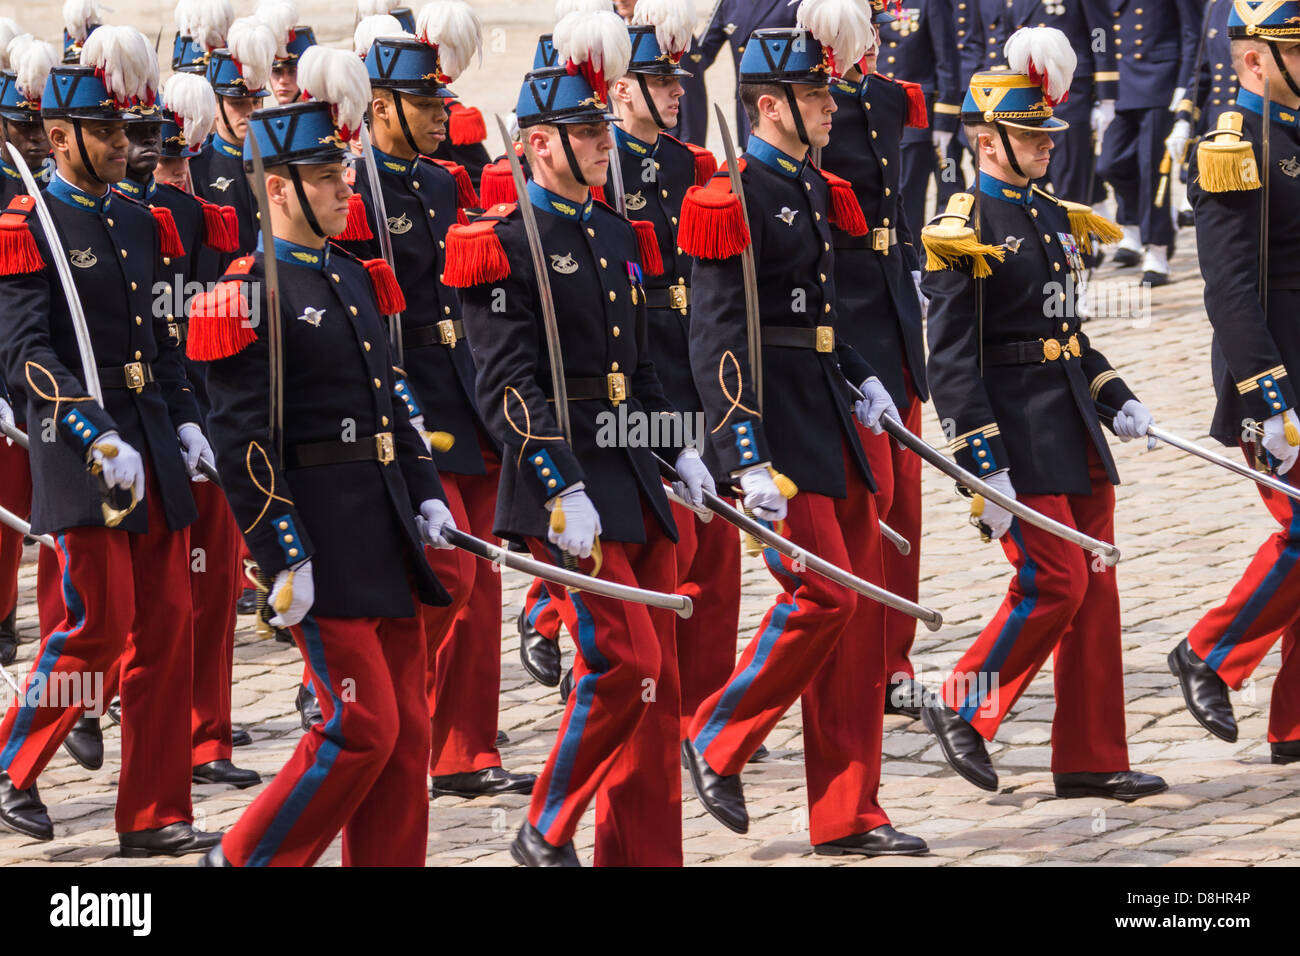 Army color casing ceremony script - Officer Cadets From The Famous French Military Academy Saint Cyr March During An Official